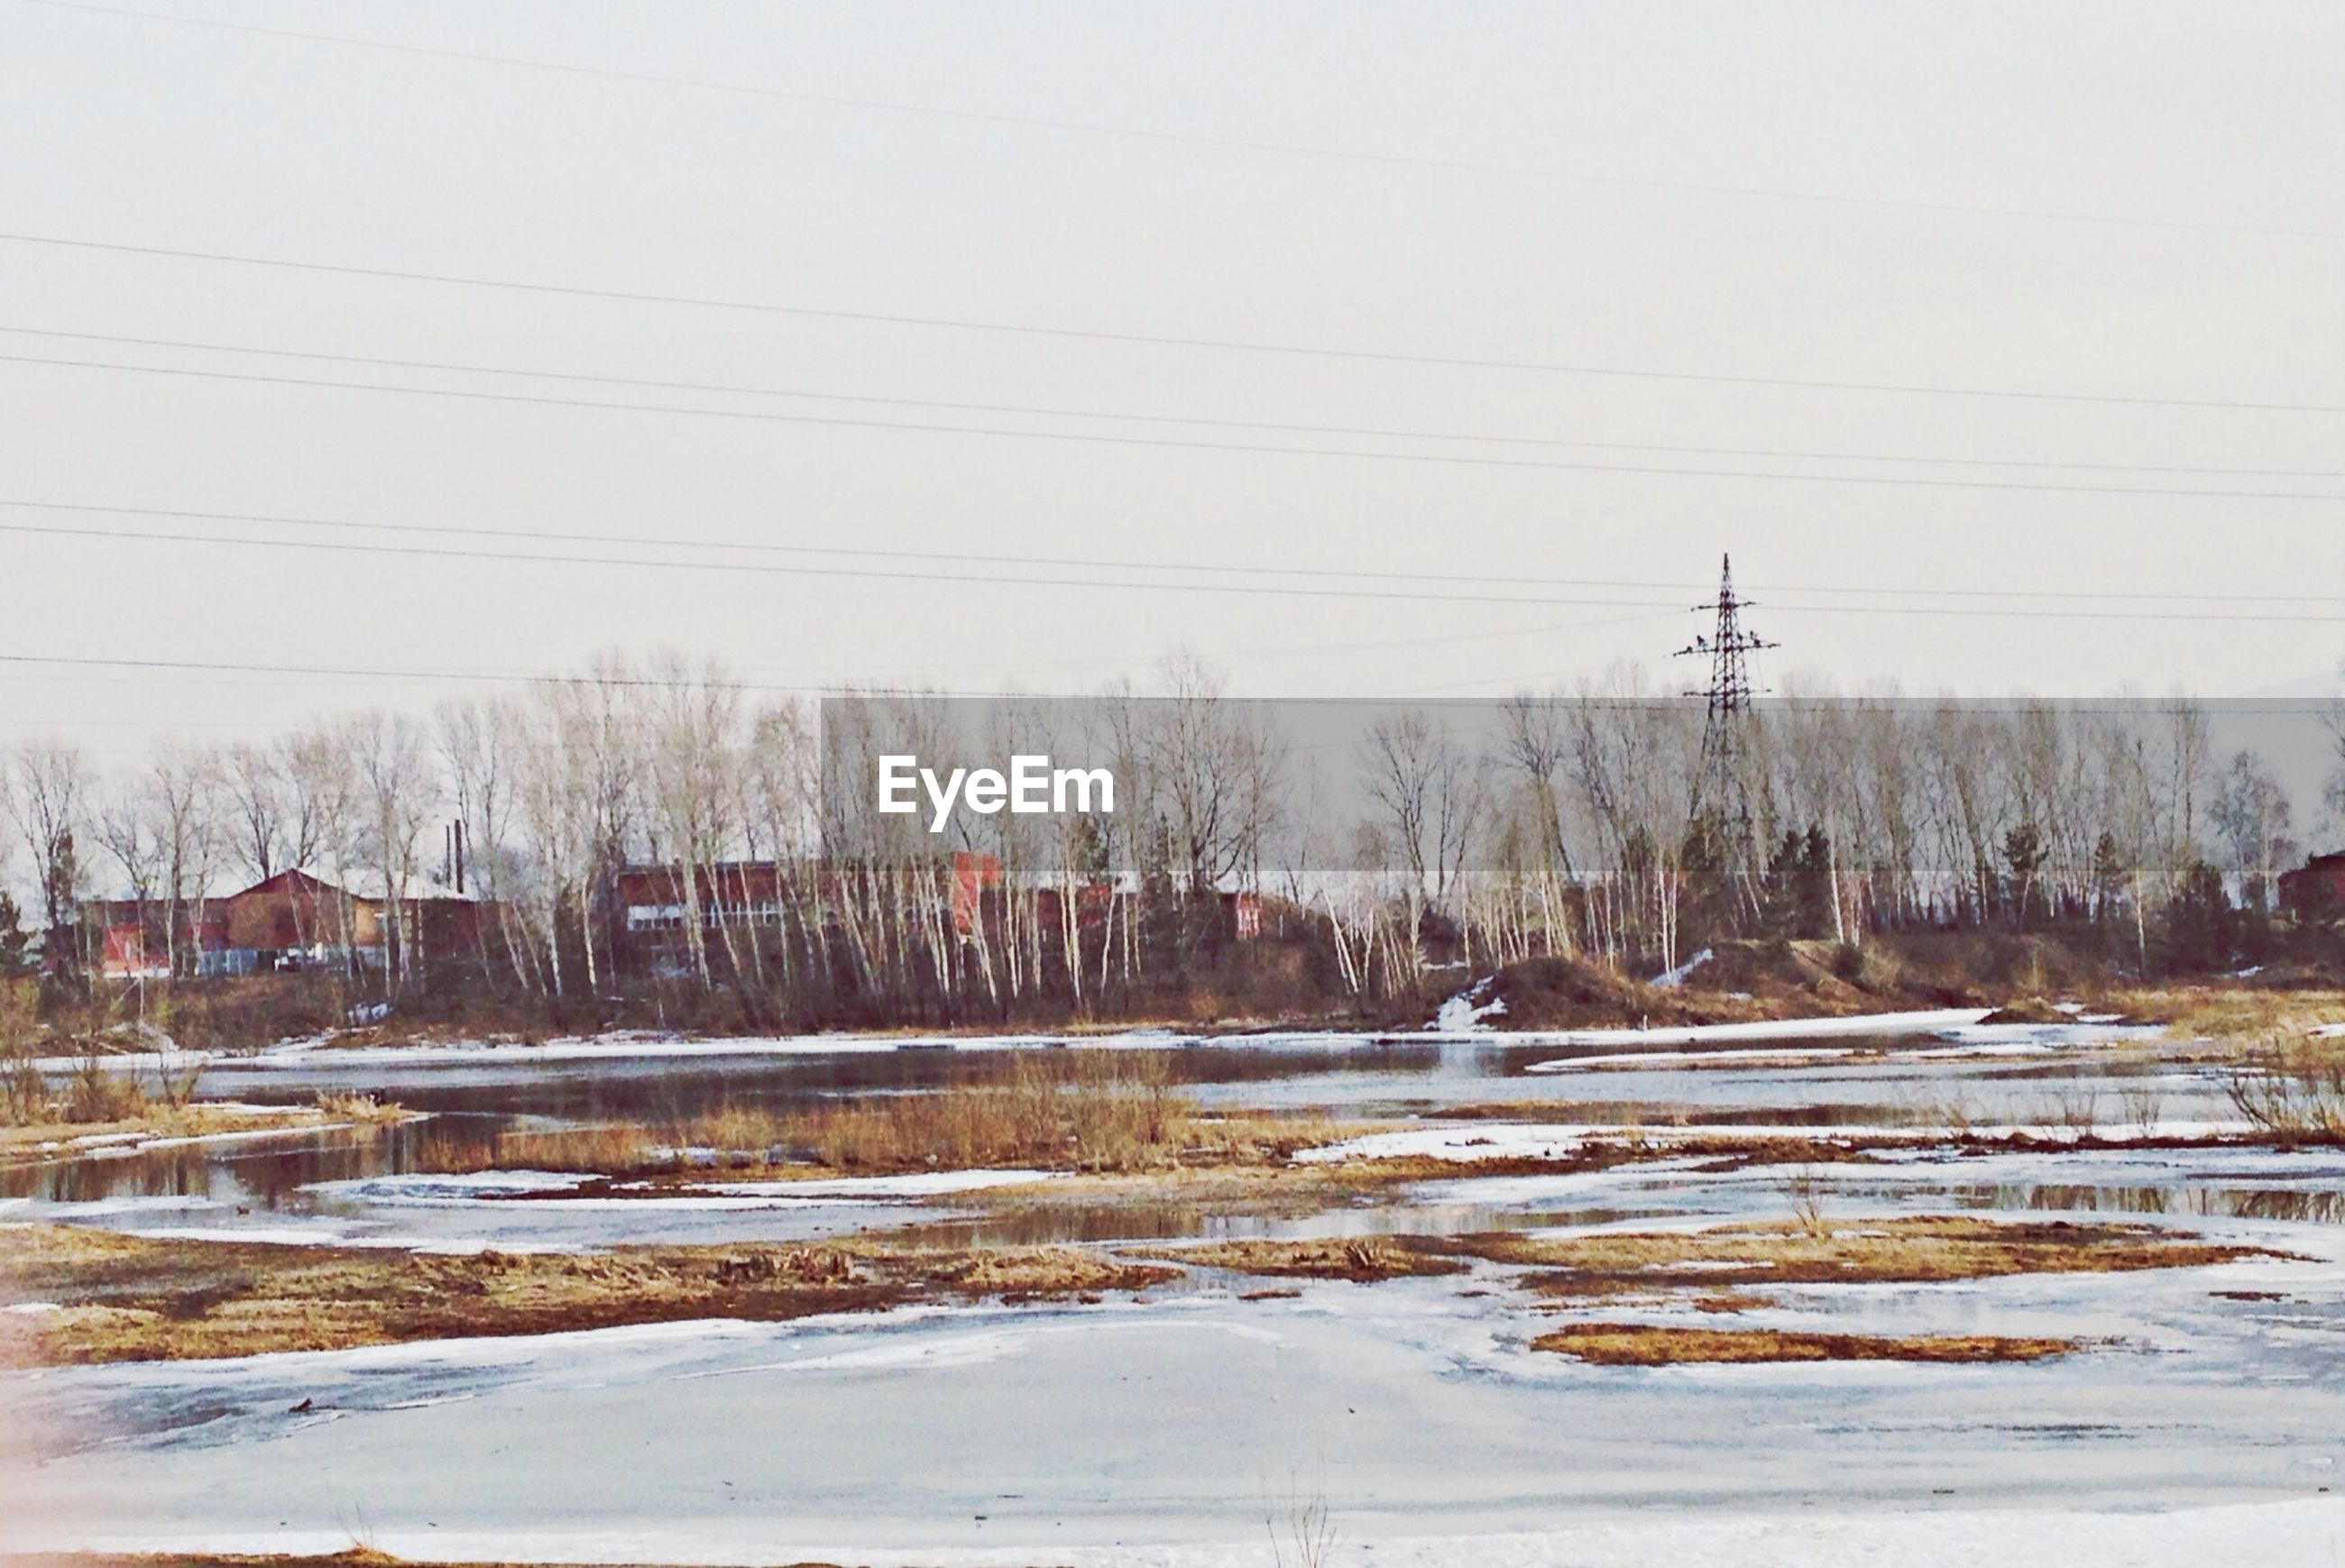 snow, winter, cold temperature, power line, season, electricity pylon, weather, field, fuel and power generation, nature, frozen, landscape, electricity, cable, sky, day, power supply, outdoors, covering, rural scene